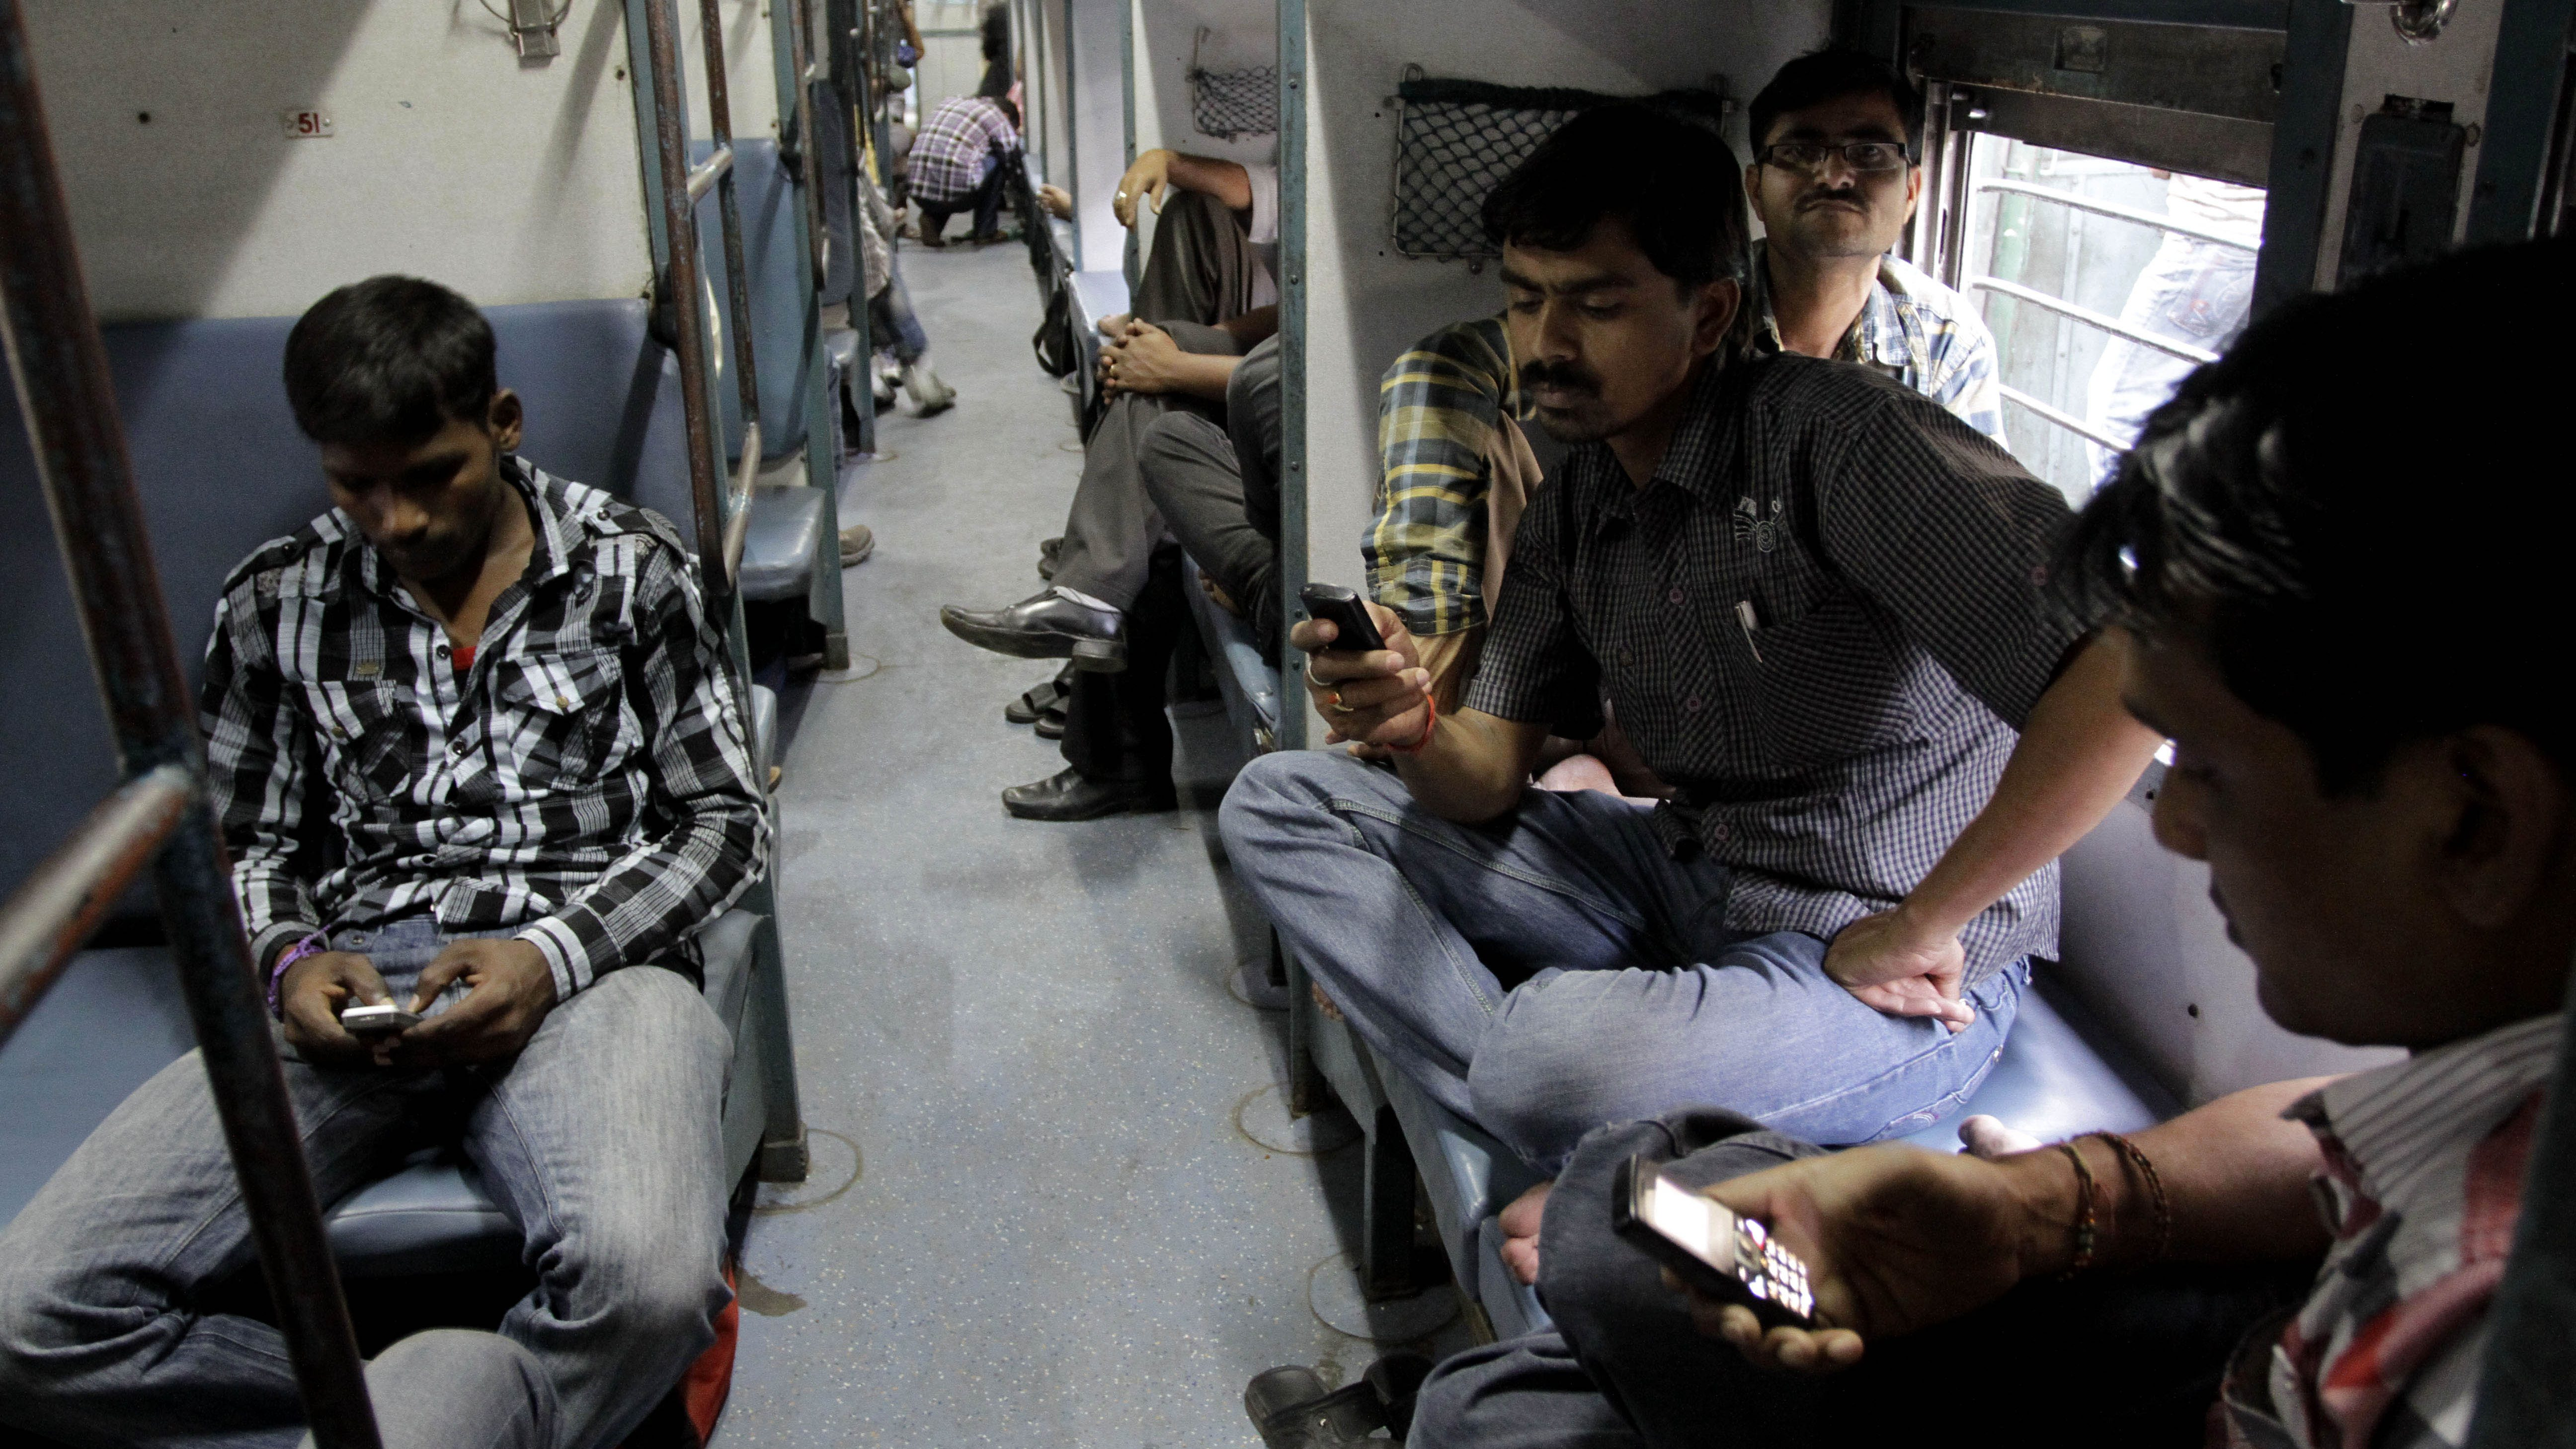 Commuters look at phones